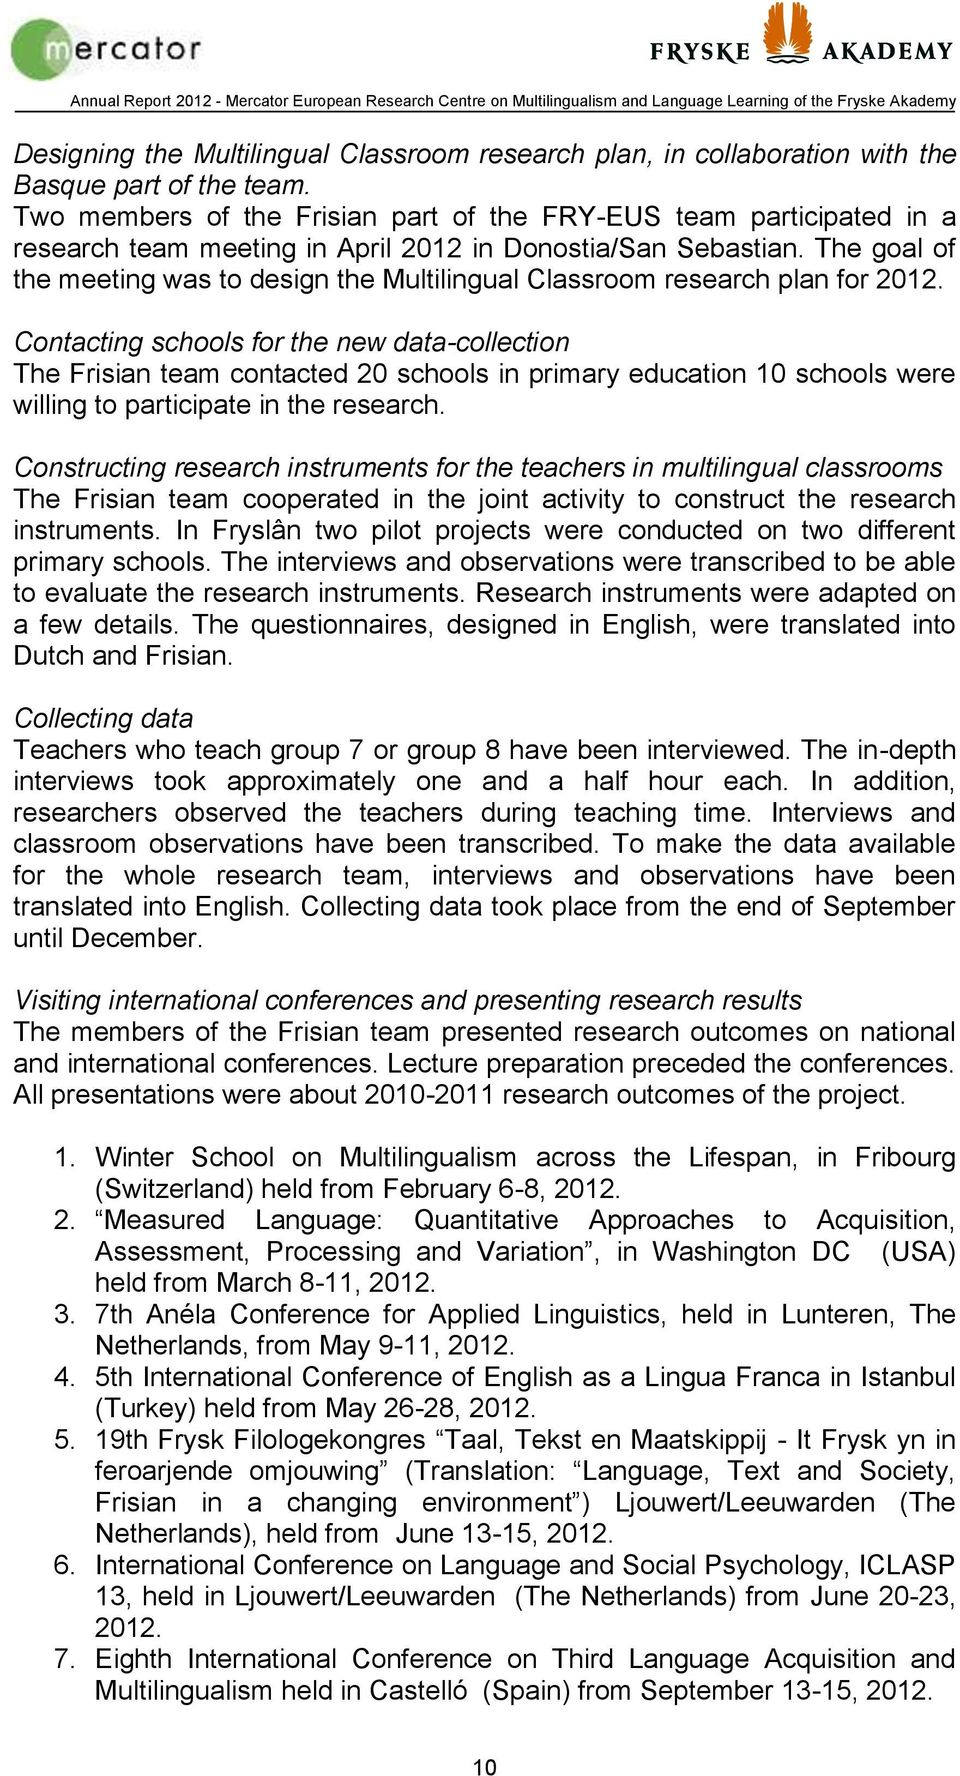 The goal of the meeting was to design the Multilingual Classroom research plan for 2012.